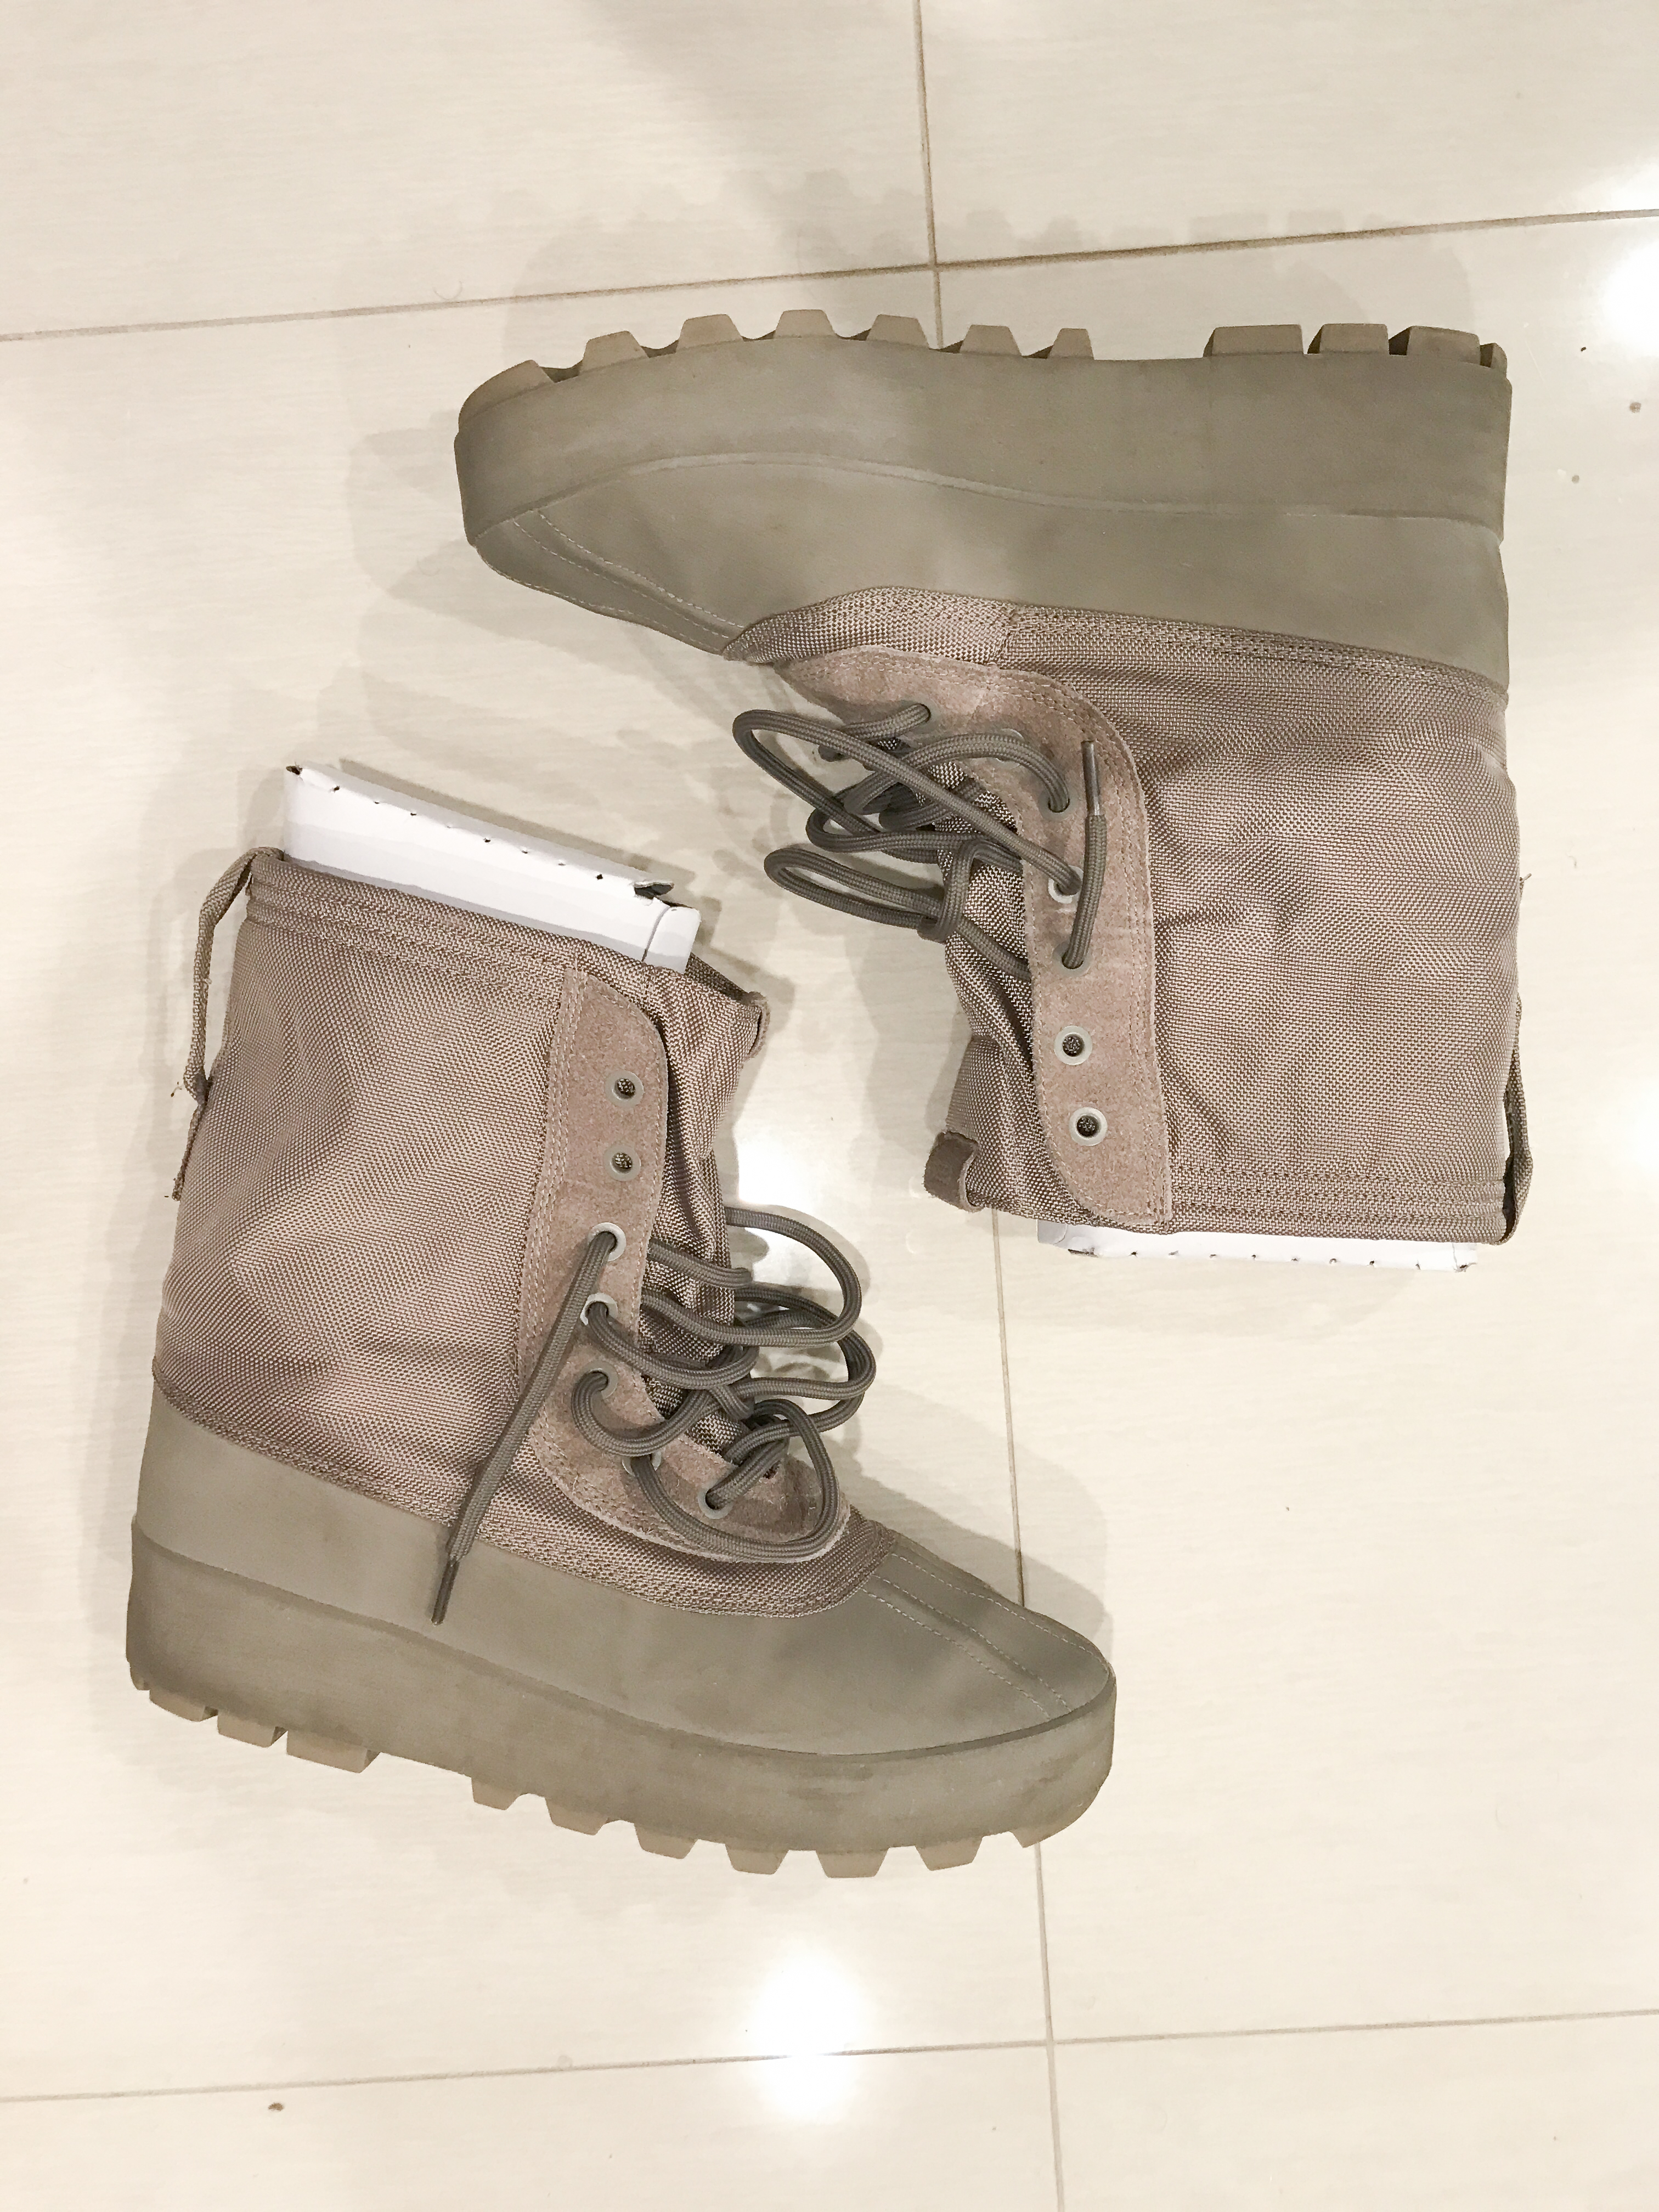 finest selection 9d18e f12fc Adidas × Kanye West. Yeezy 950 Duckboot ...